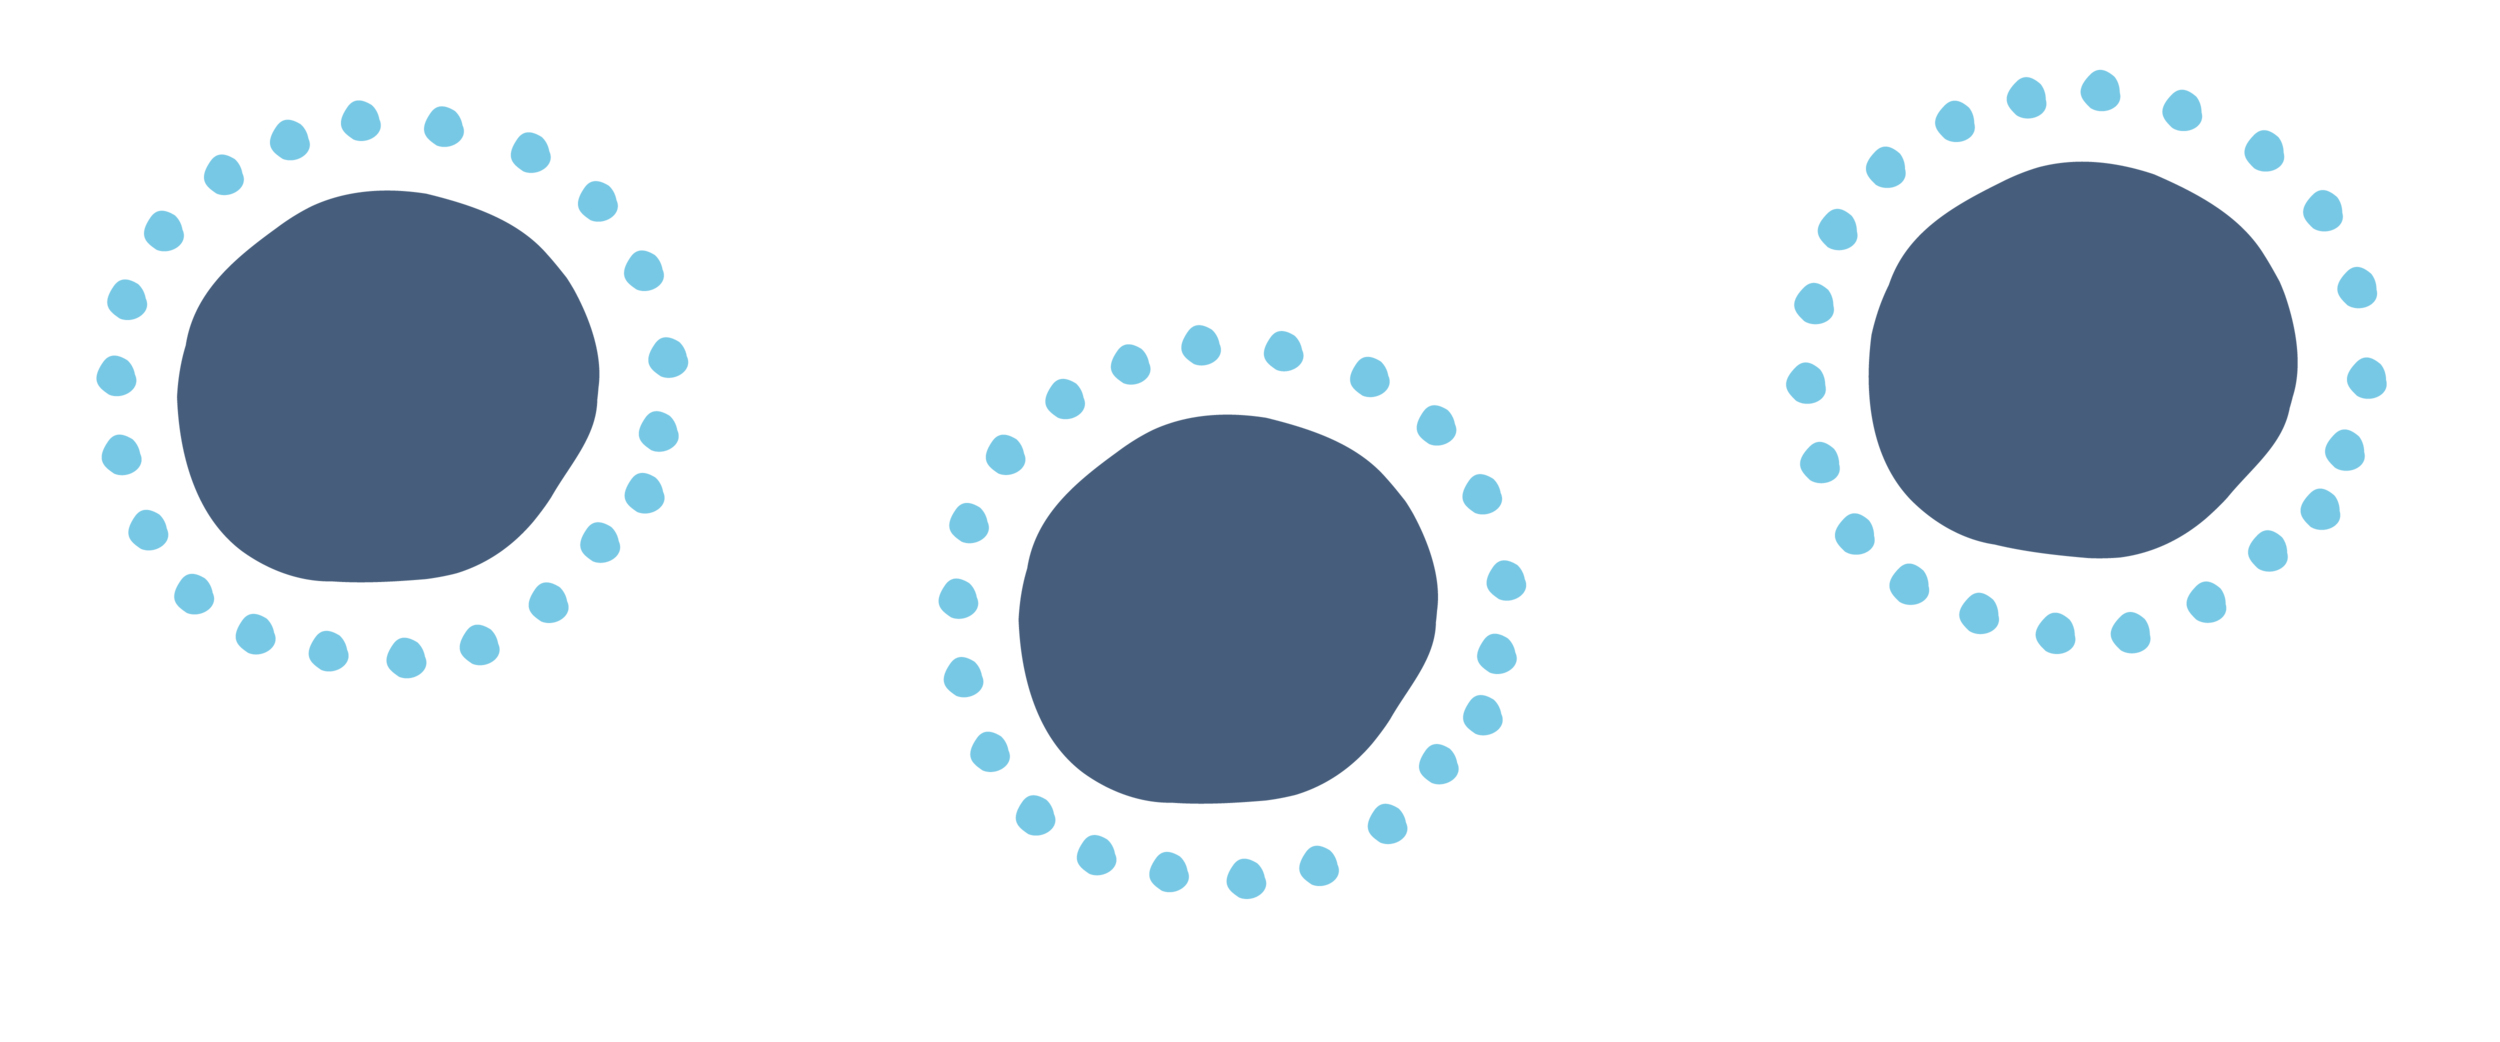 LITTLE BLUE DOTS SURROUND PATTERN pattern-01.png